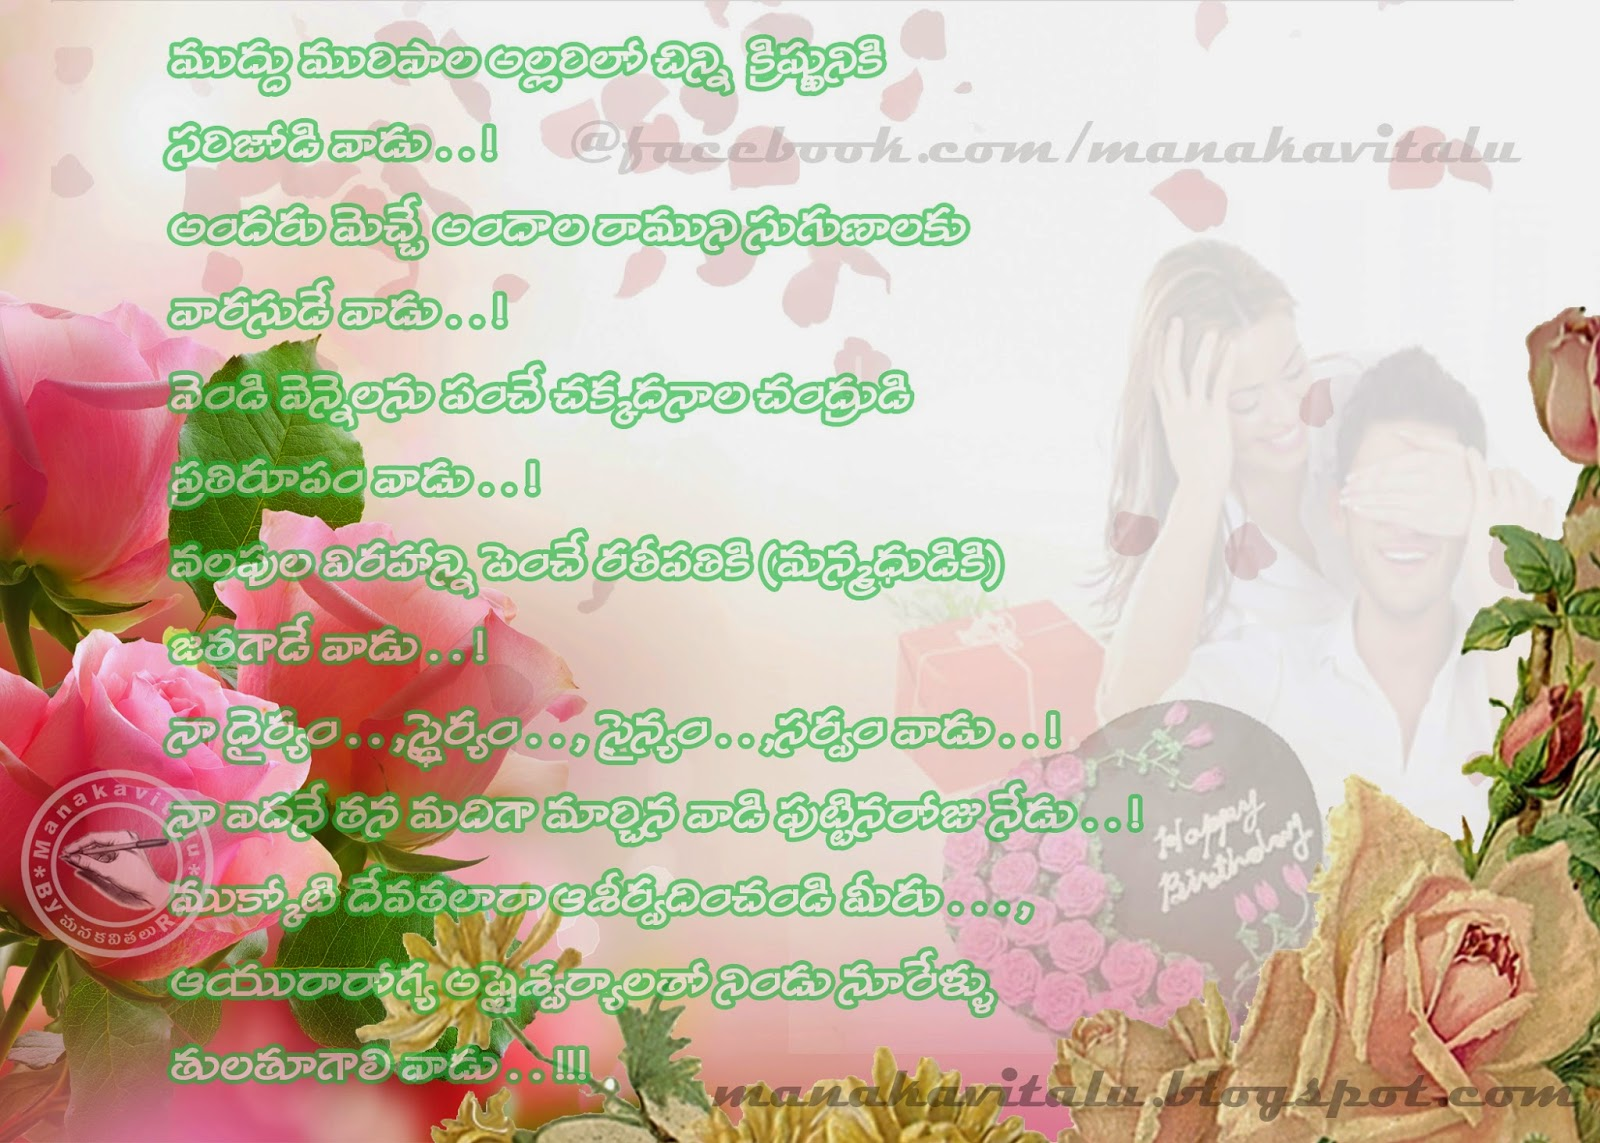 Birthday wishes in telugu kavitalu on images to download save best birthday wishes in telugu kavitalu on images to download save m4hsunfo